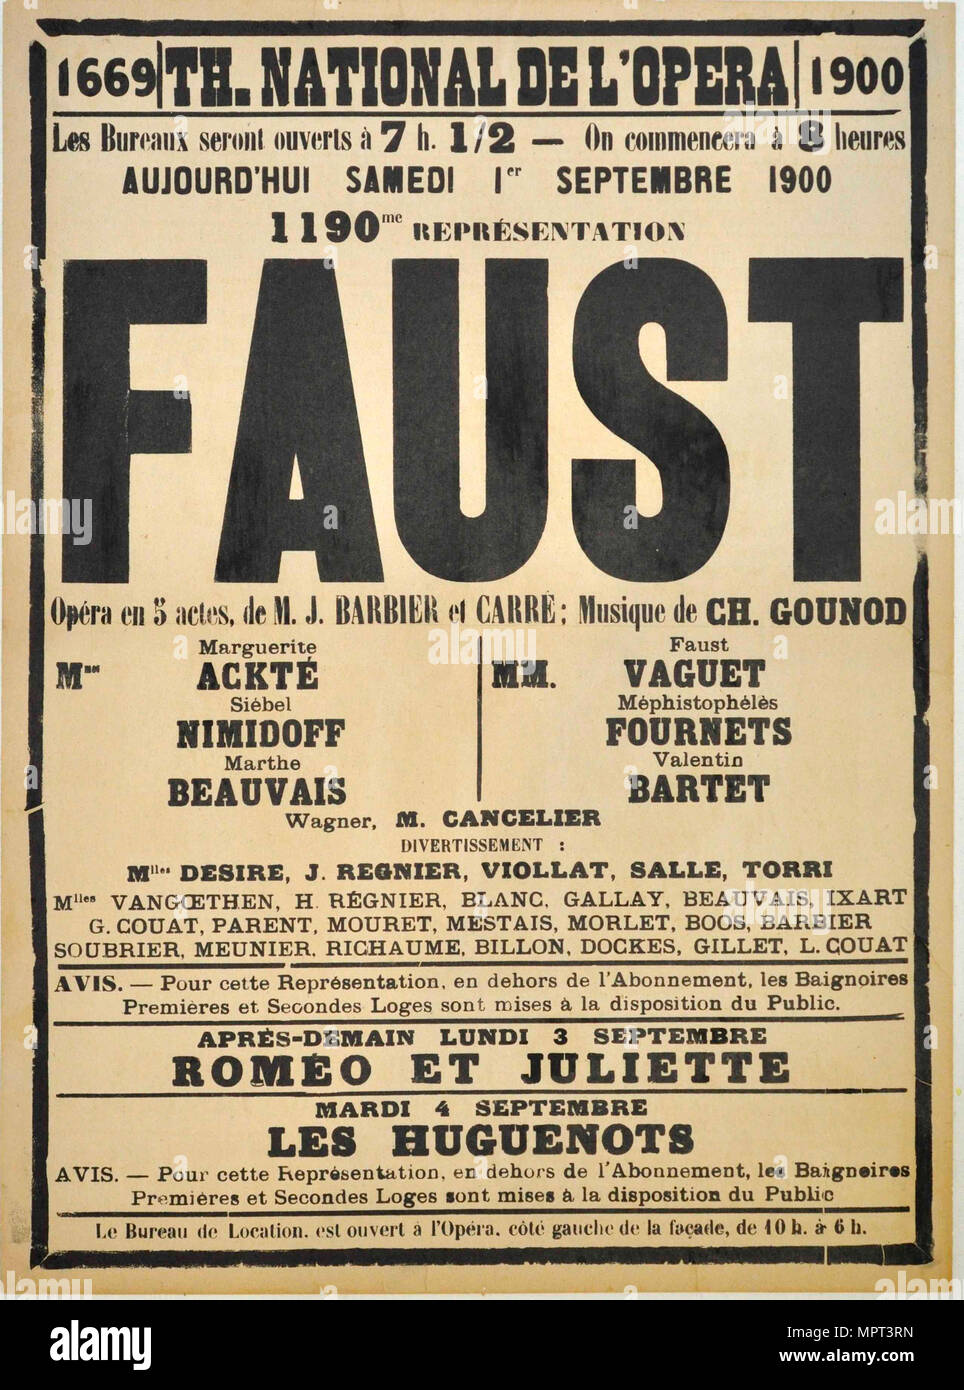 Poster for the Opera Faust by Charles Gounod at the Théâtre national de l'Opéra, September 1900, 1 Stock Photo